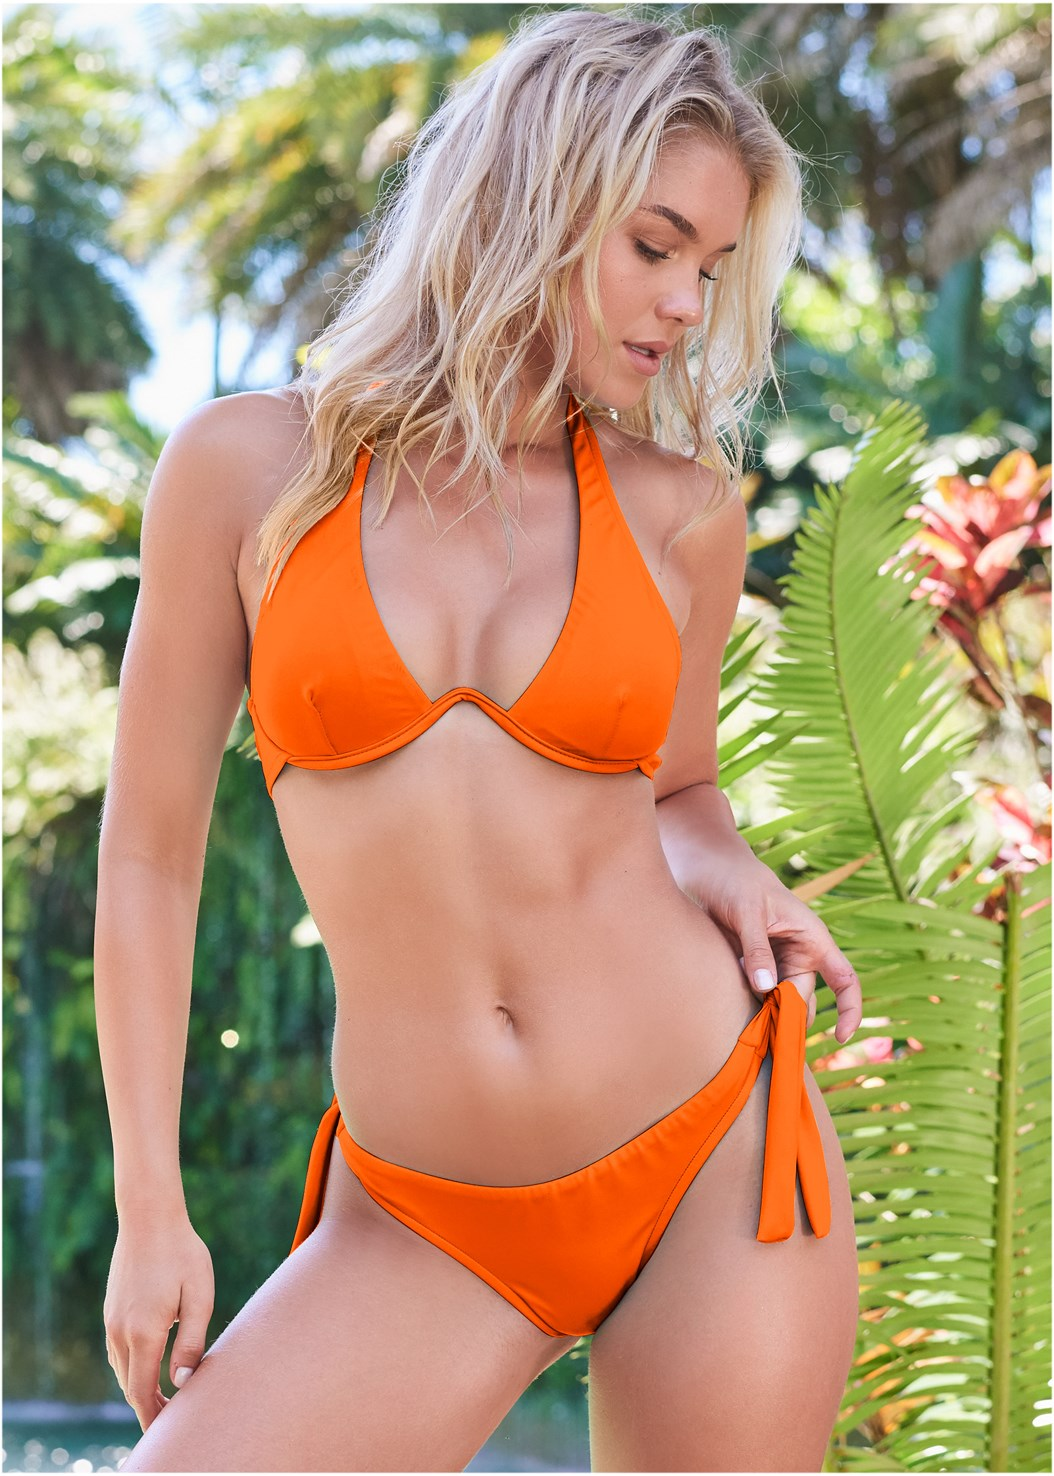 Sports Illustrated Swim™ Sash Tie Side Bottom,Sports Illustrated Swim™ Continuous Underwire Bra Top,Sports Illustrated Swim™ Double Strap Triangle Top